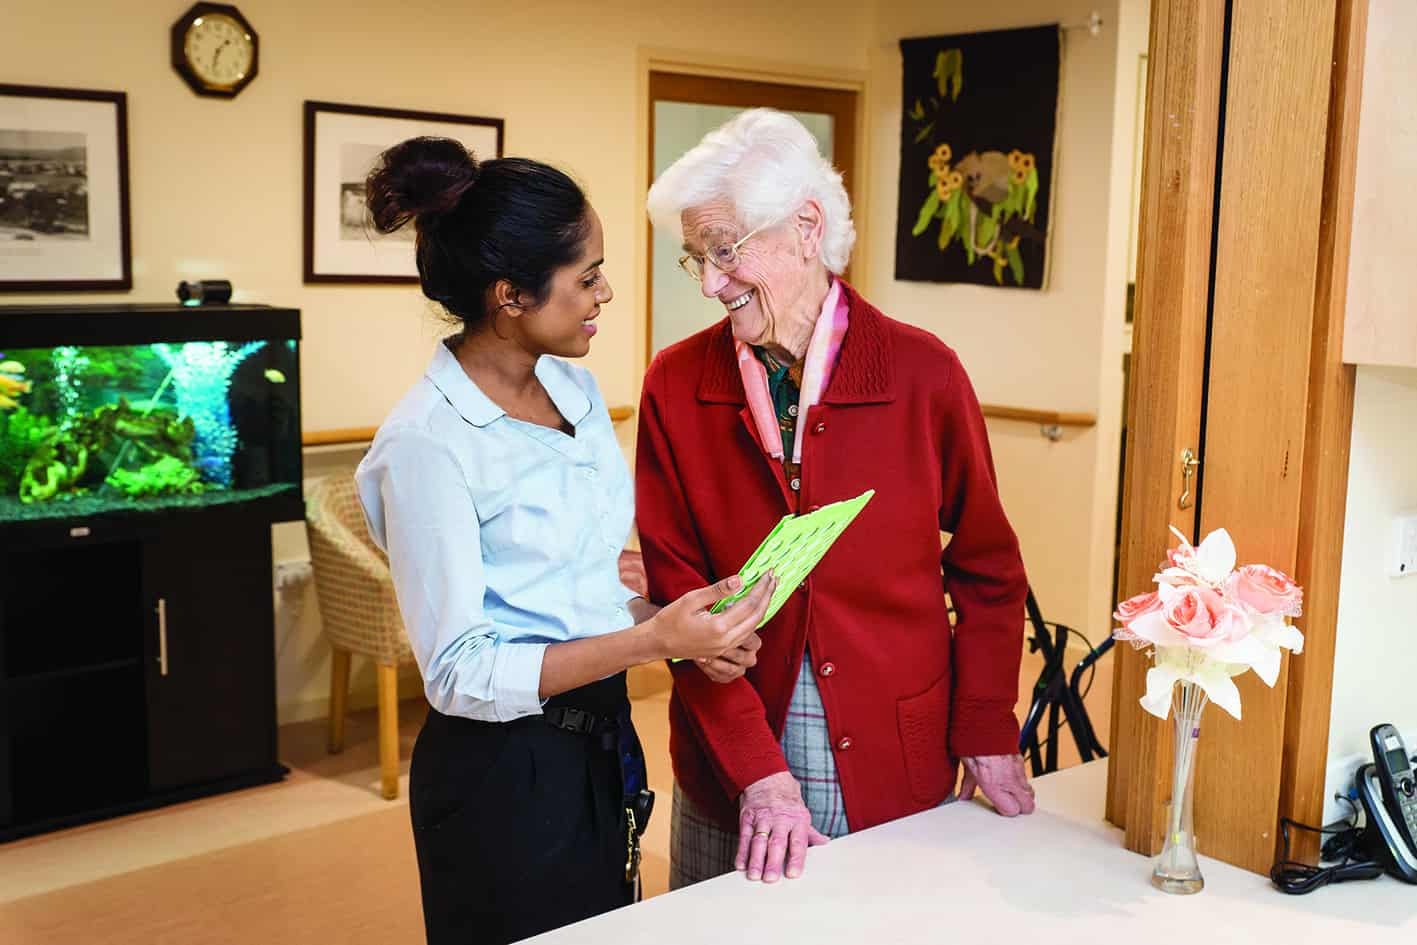 Looking For An Aged Care Home Or Nursing Home In Adelaide And South